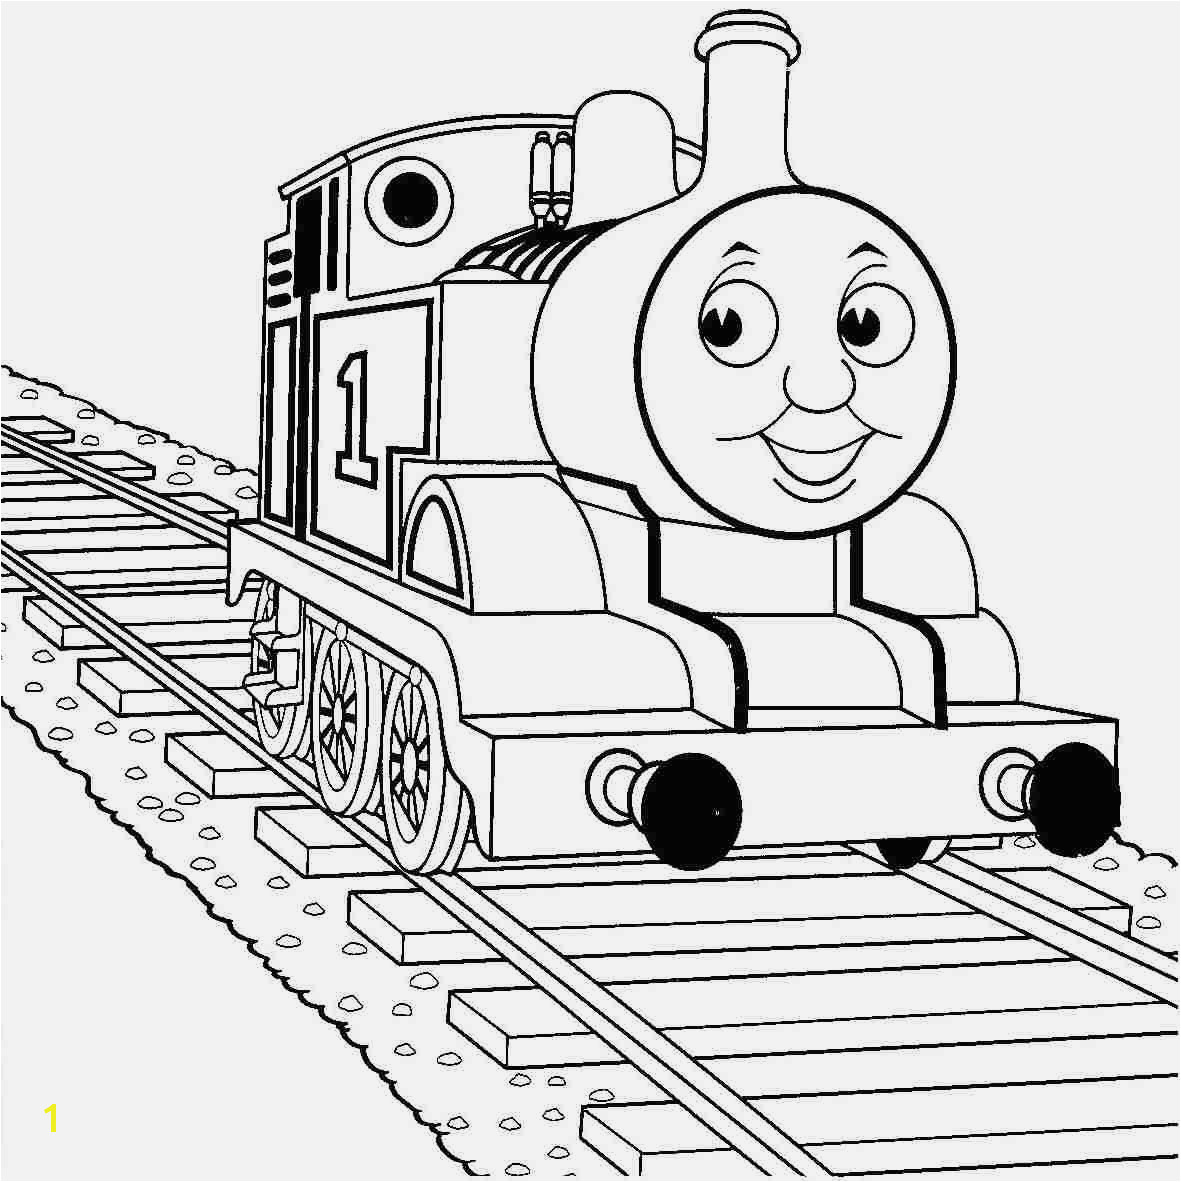 Thomas the Train Coloring Pages Best Easy 41 Coloring Pages Thomas the Train Printable Thomas the